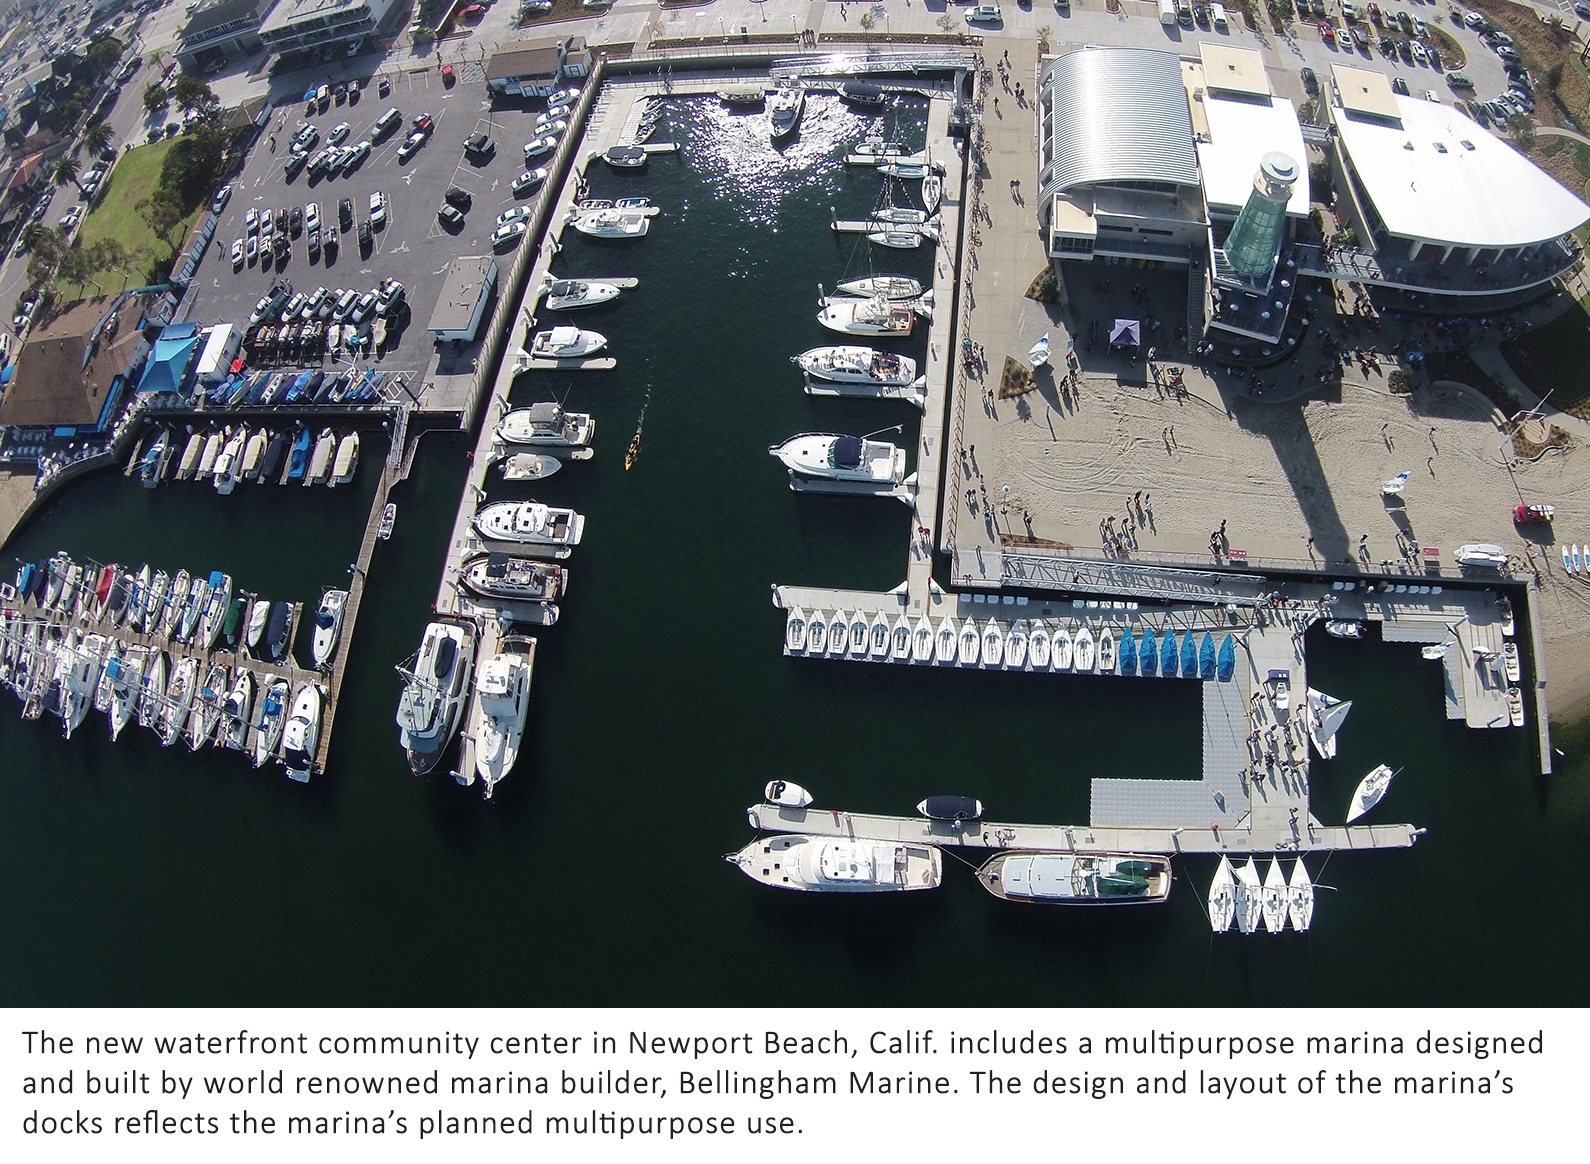 concrete floating docks by Bellingham Marine were installed at Marina Park